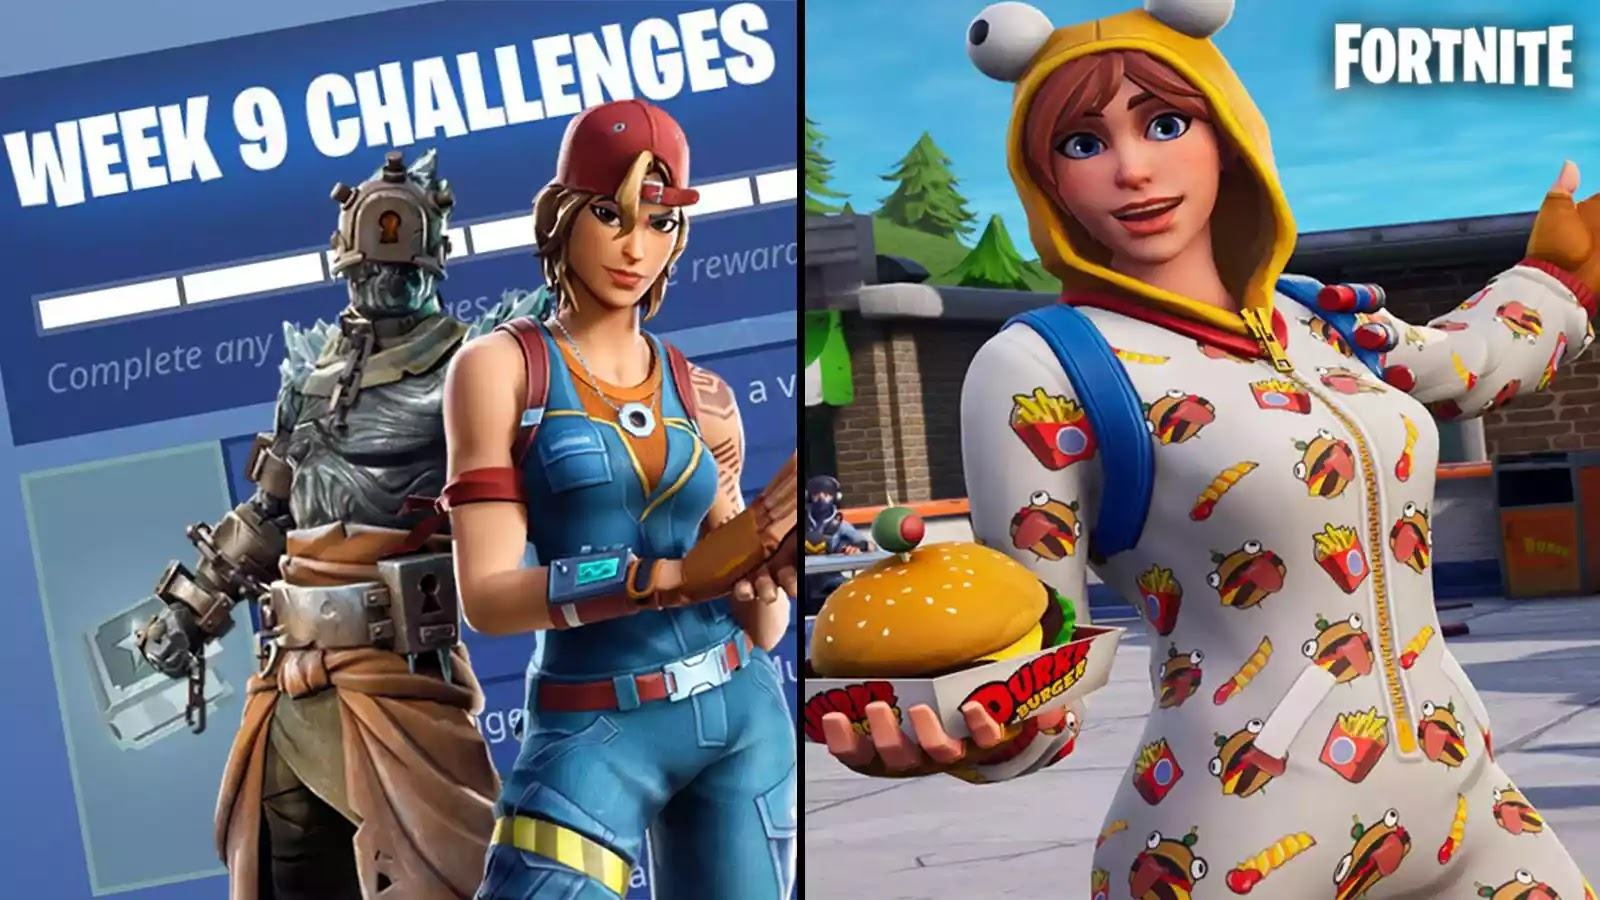 Easiest Place To Get Shotgun Eliminations Fortnite Fortnite Season 7 Week 9 Challenges And How To Complete Them Fast Phonevscell Phonevscell Error 404 Phonevscell